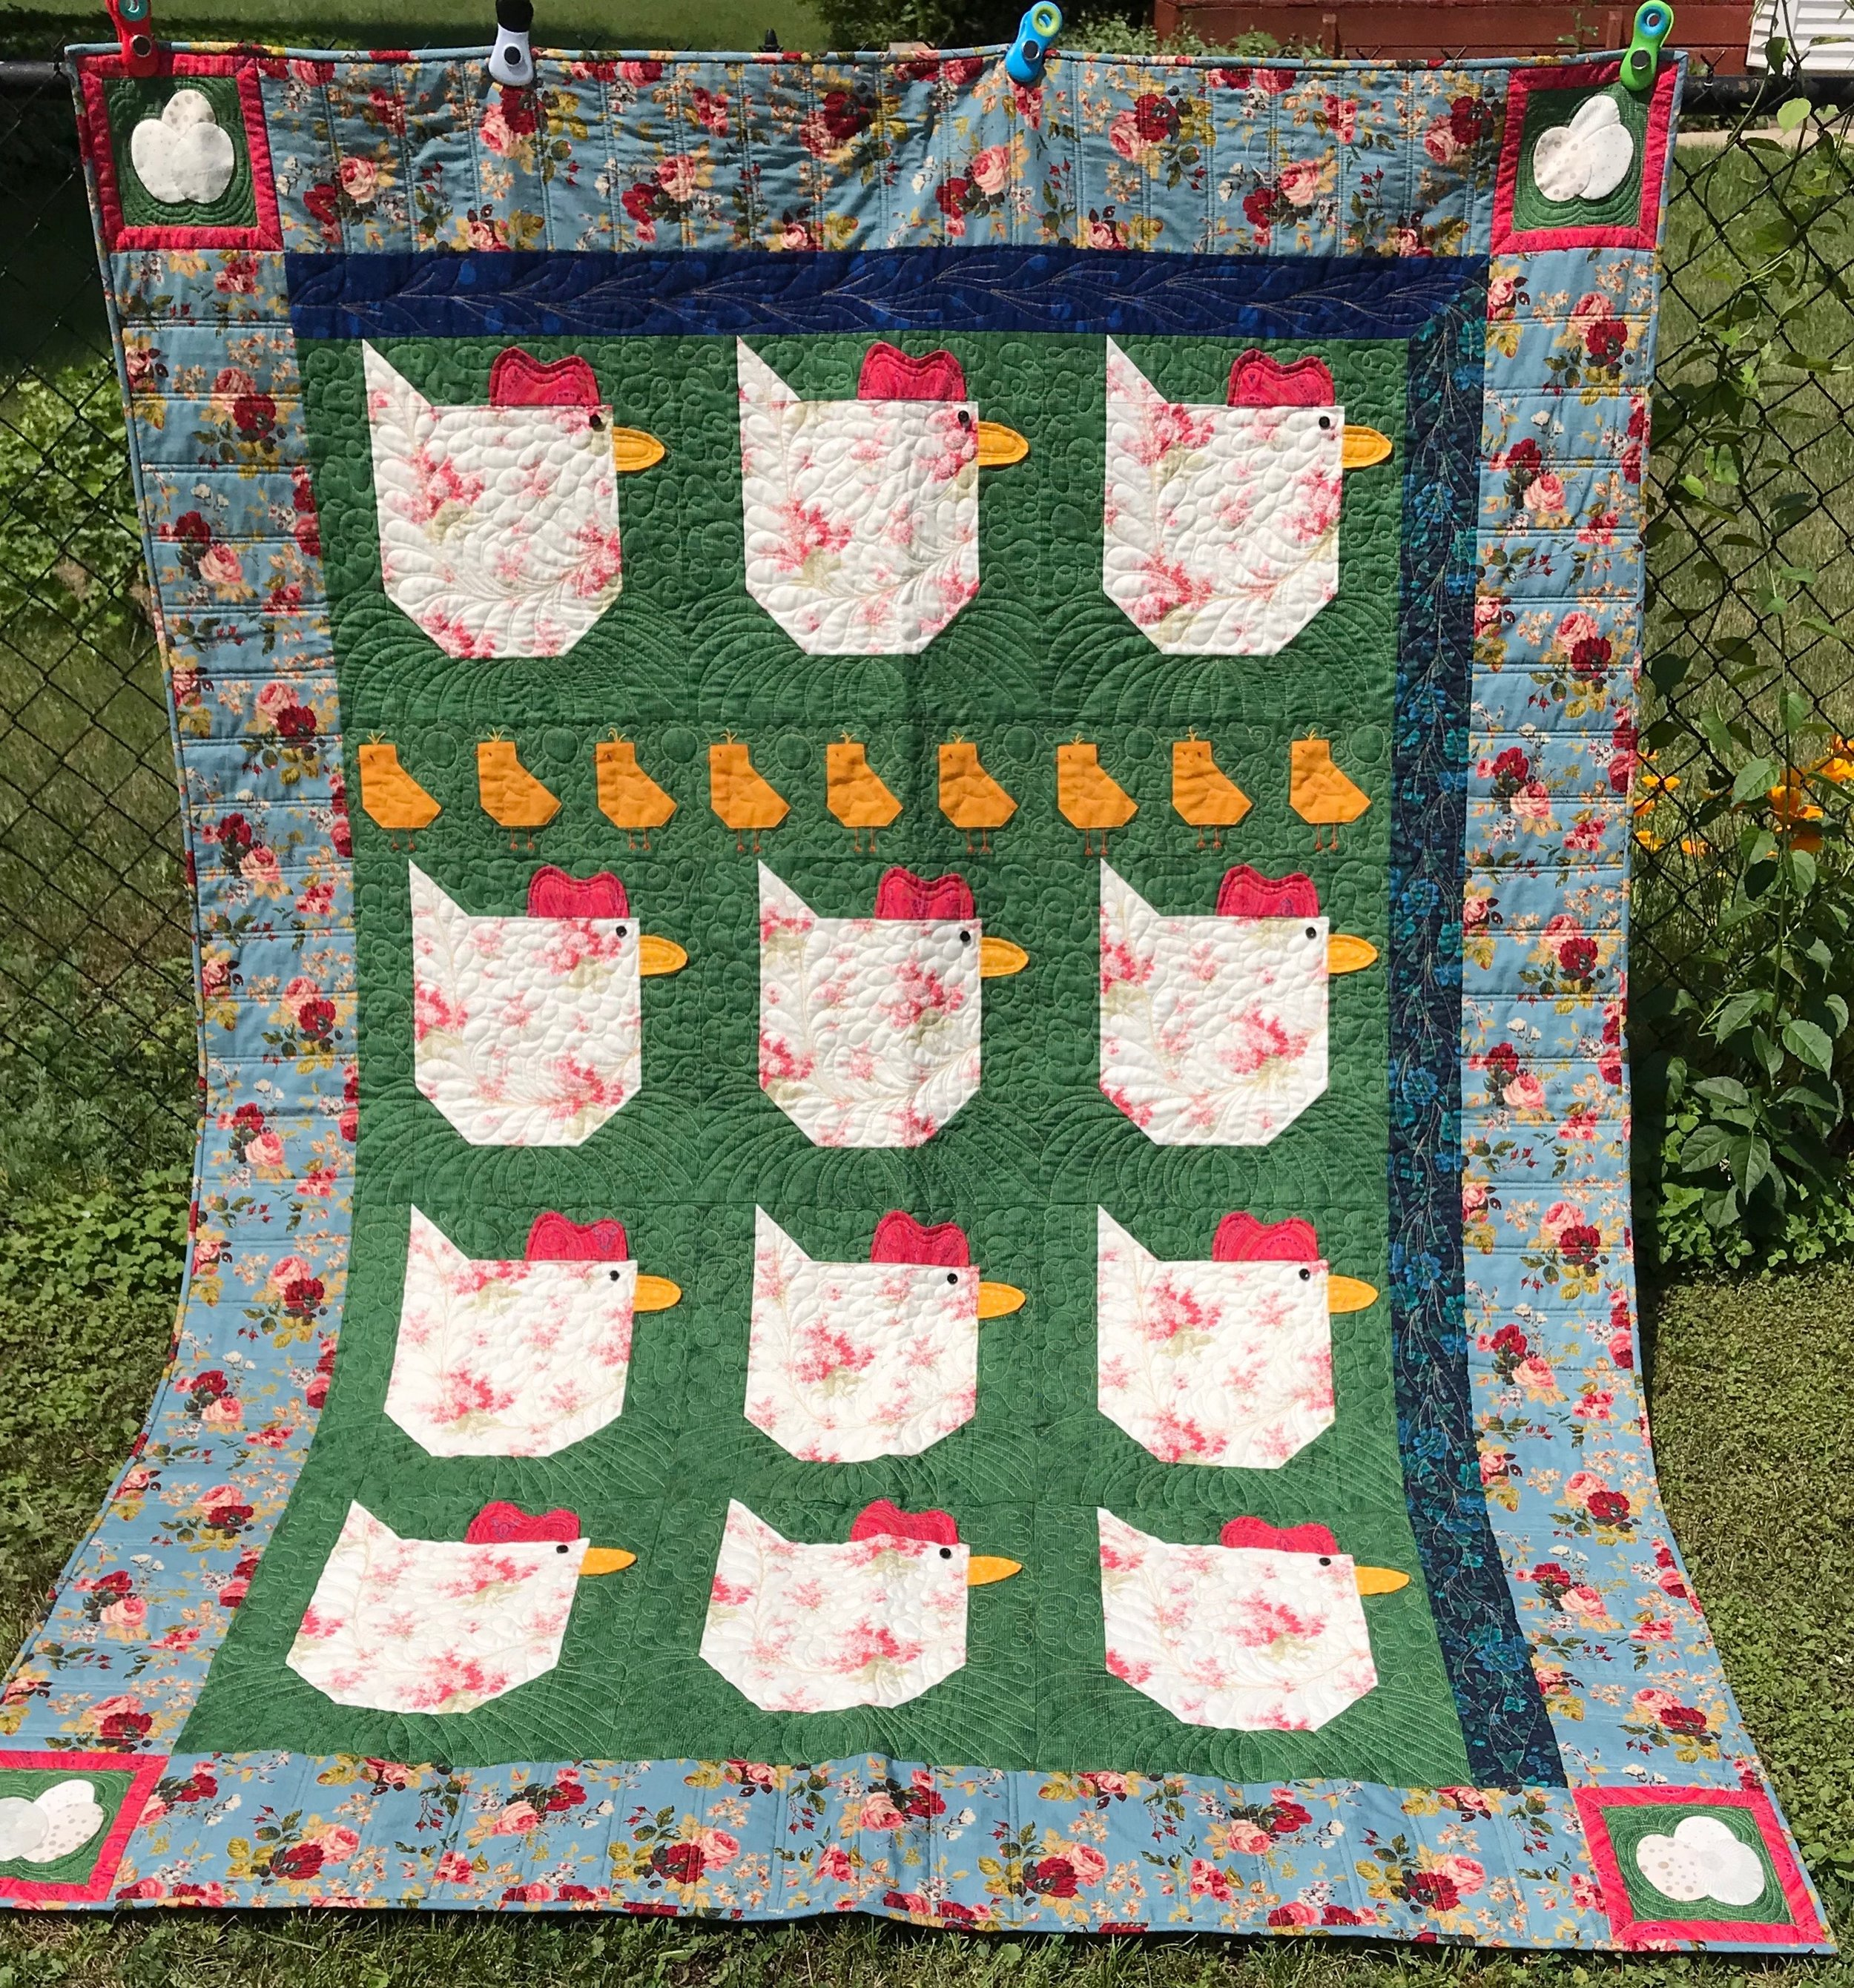 Working Women, Pieced, Appliquéd, Embroidered, Custom Machine Quilted, donated by Char Taber, 60 x 78""